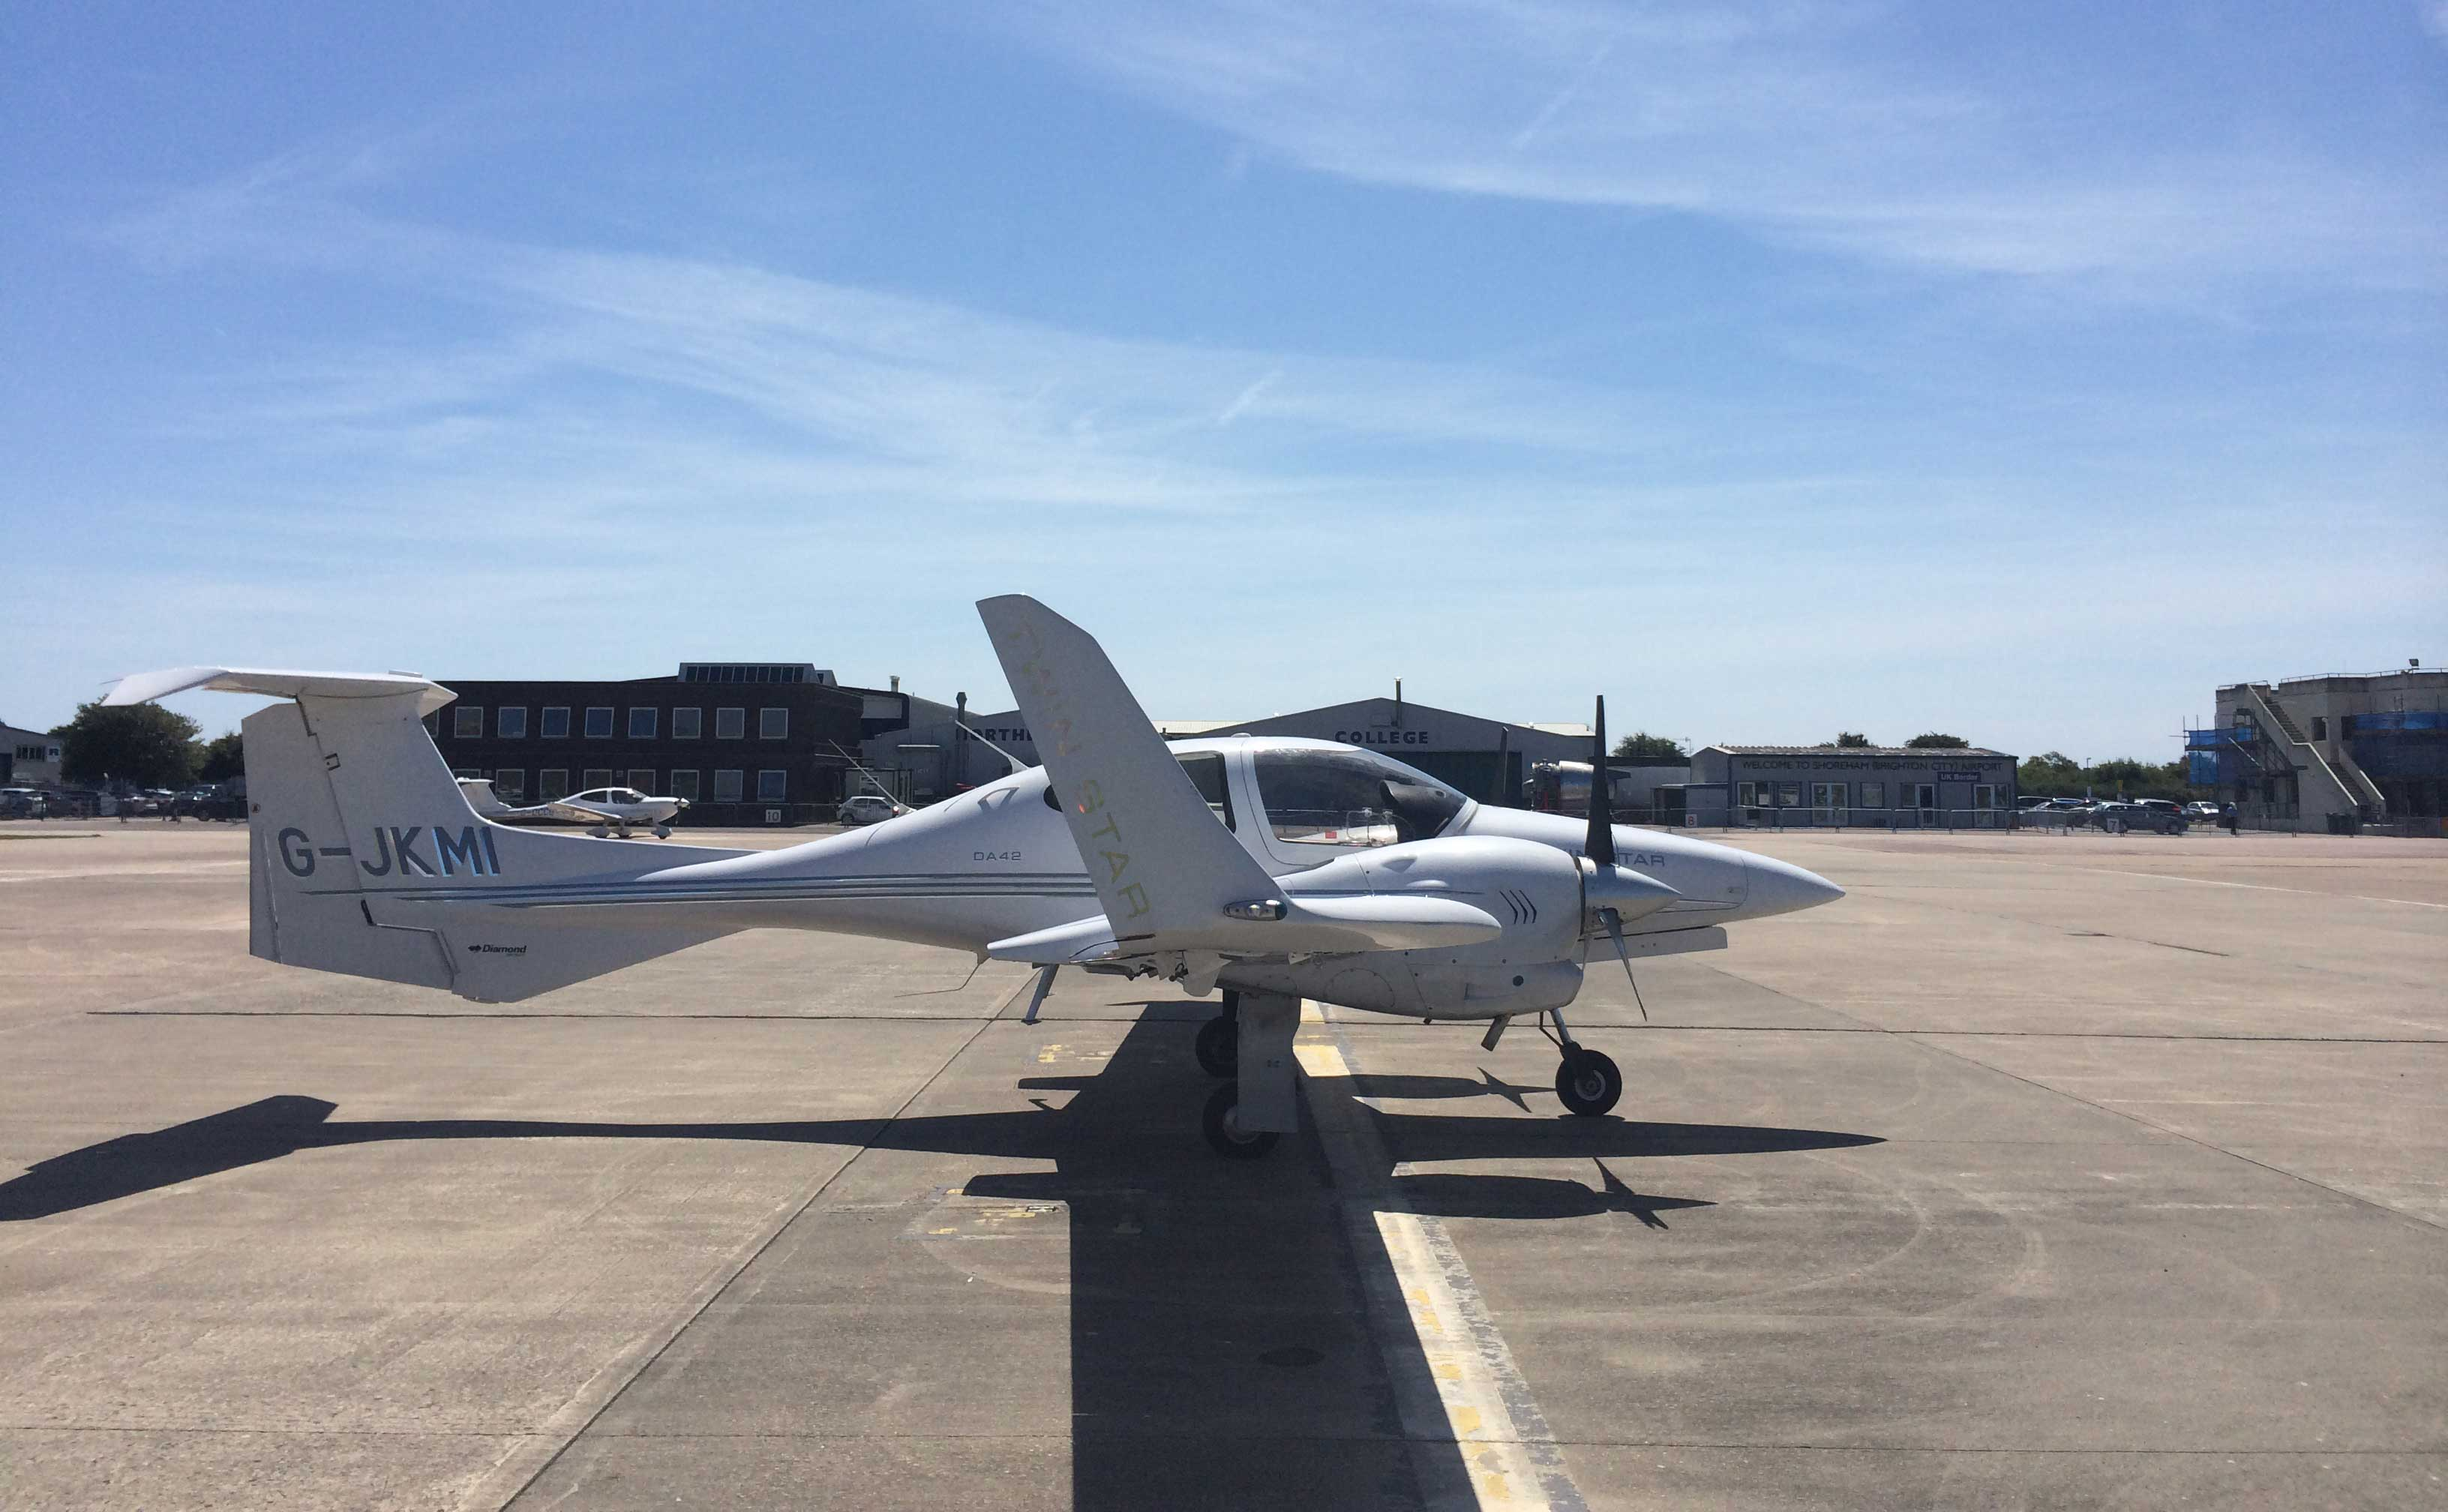 Diamond-web-Apron-da42